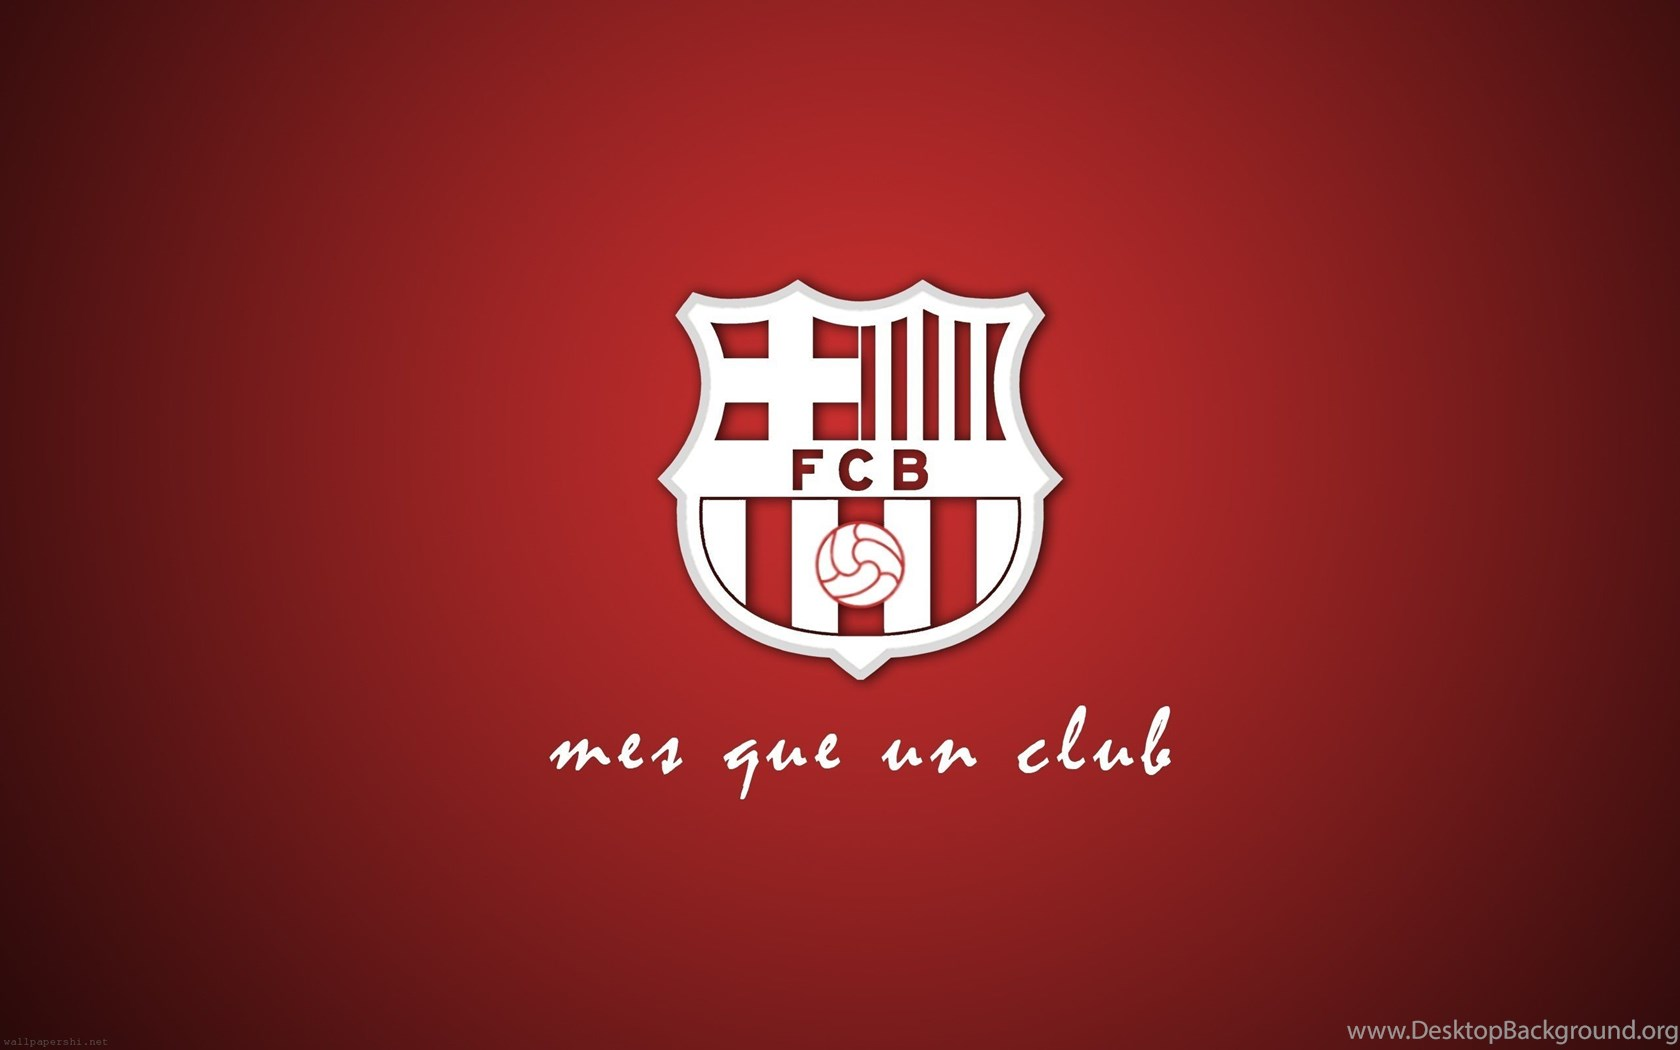 fc barcelona logo wallpapers red backgrounds desktop background fc barcelona logo wallpapers red